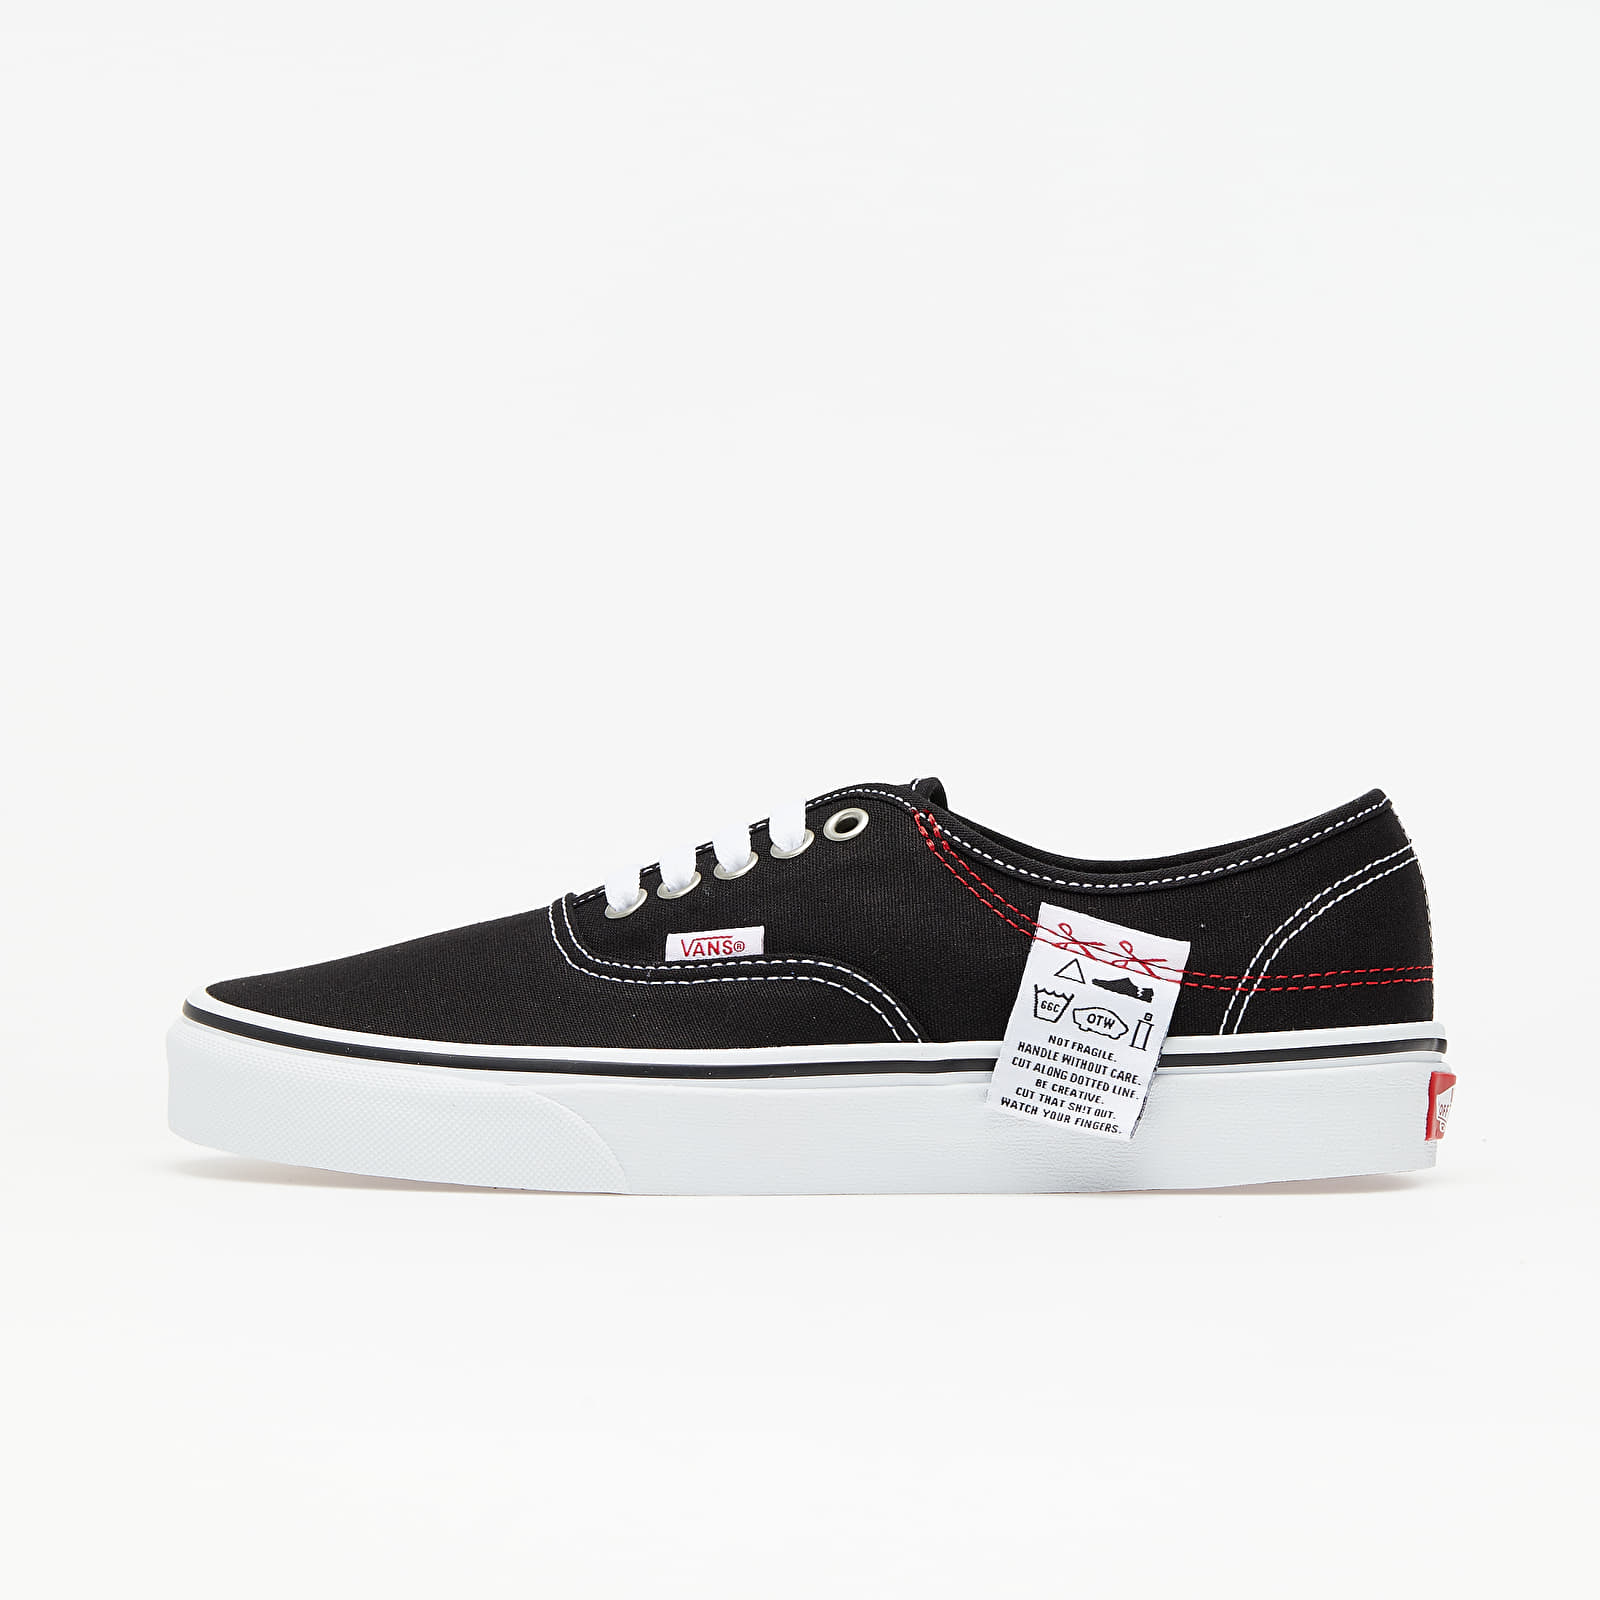 Vans Authentic Hc (Diy) Black/ True White EUR 42.5